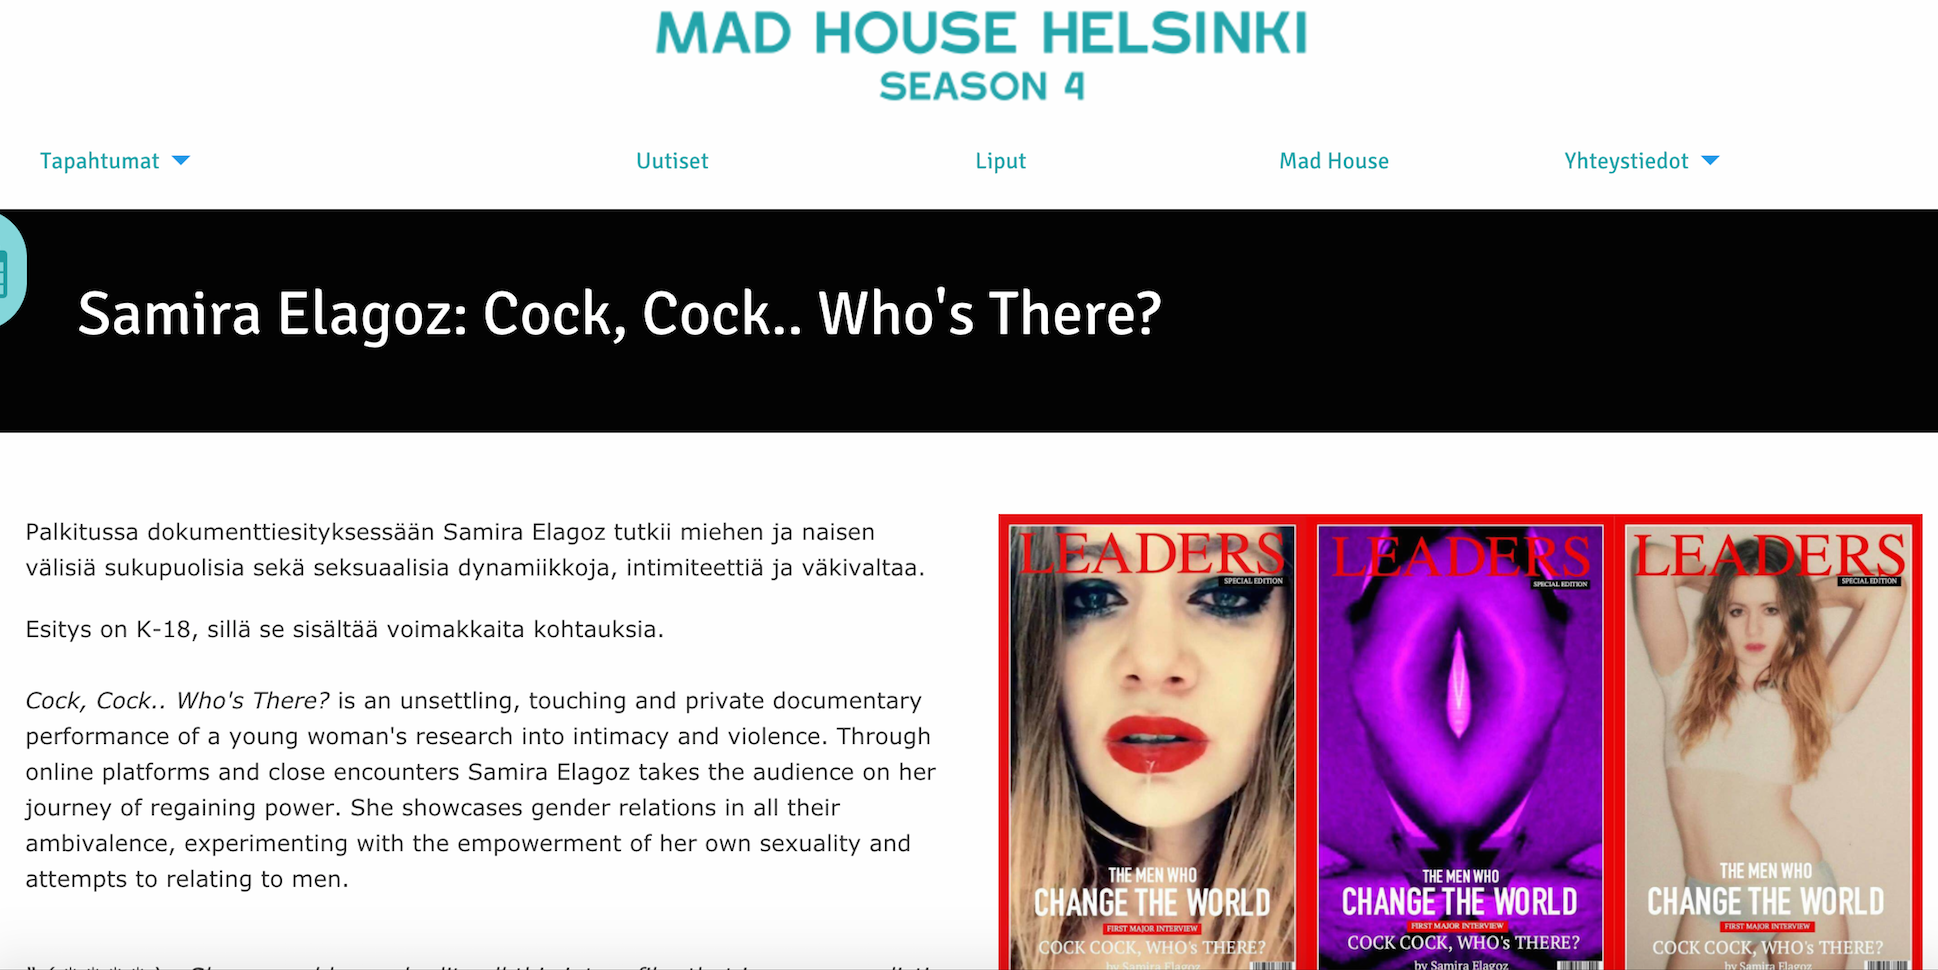 My Finnish debut at MAD HOUSE Helsinki 13 - 14.1.2017